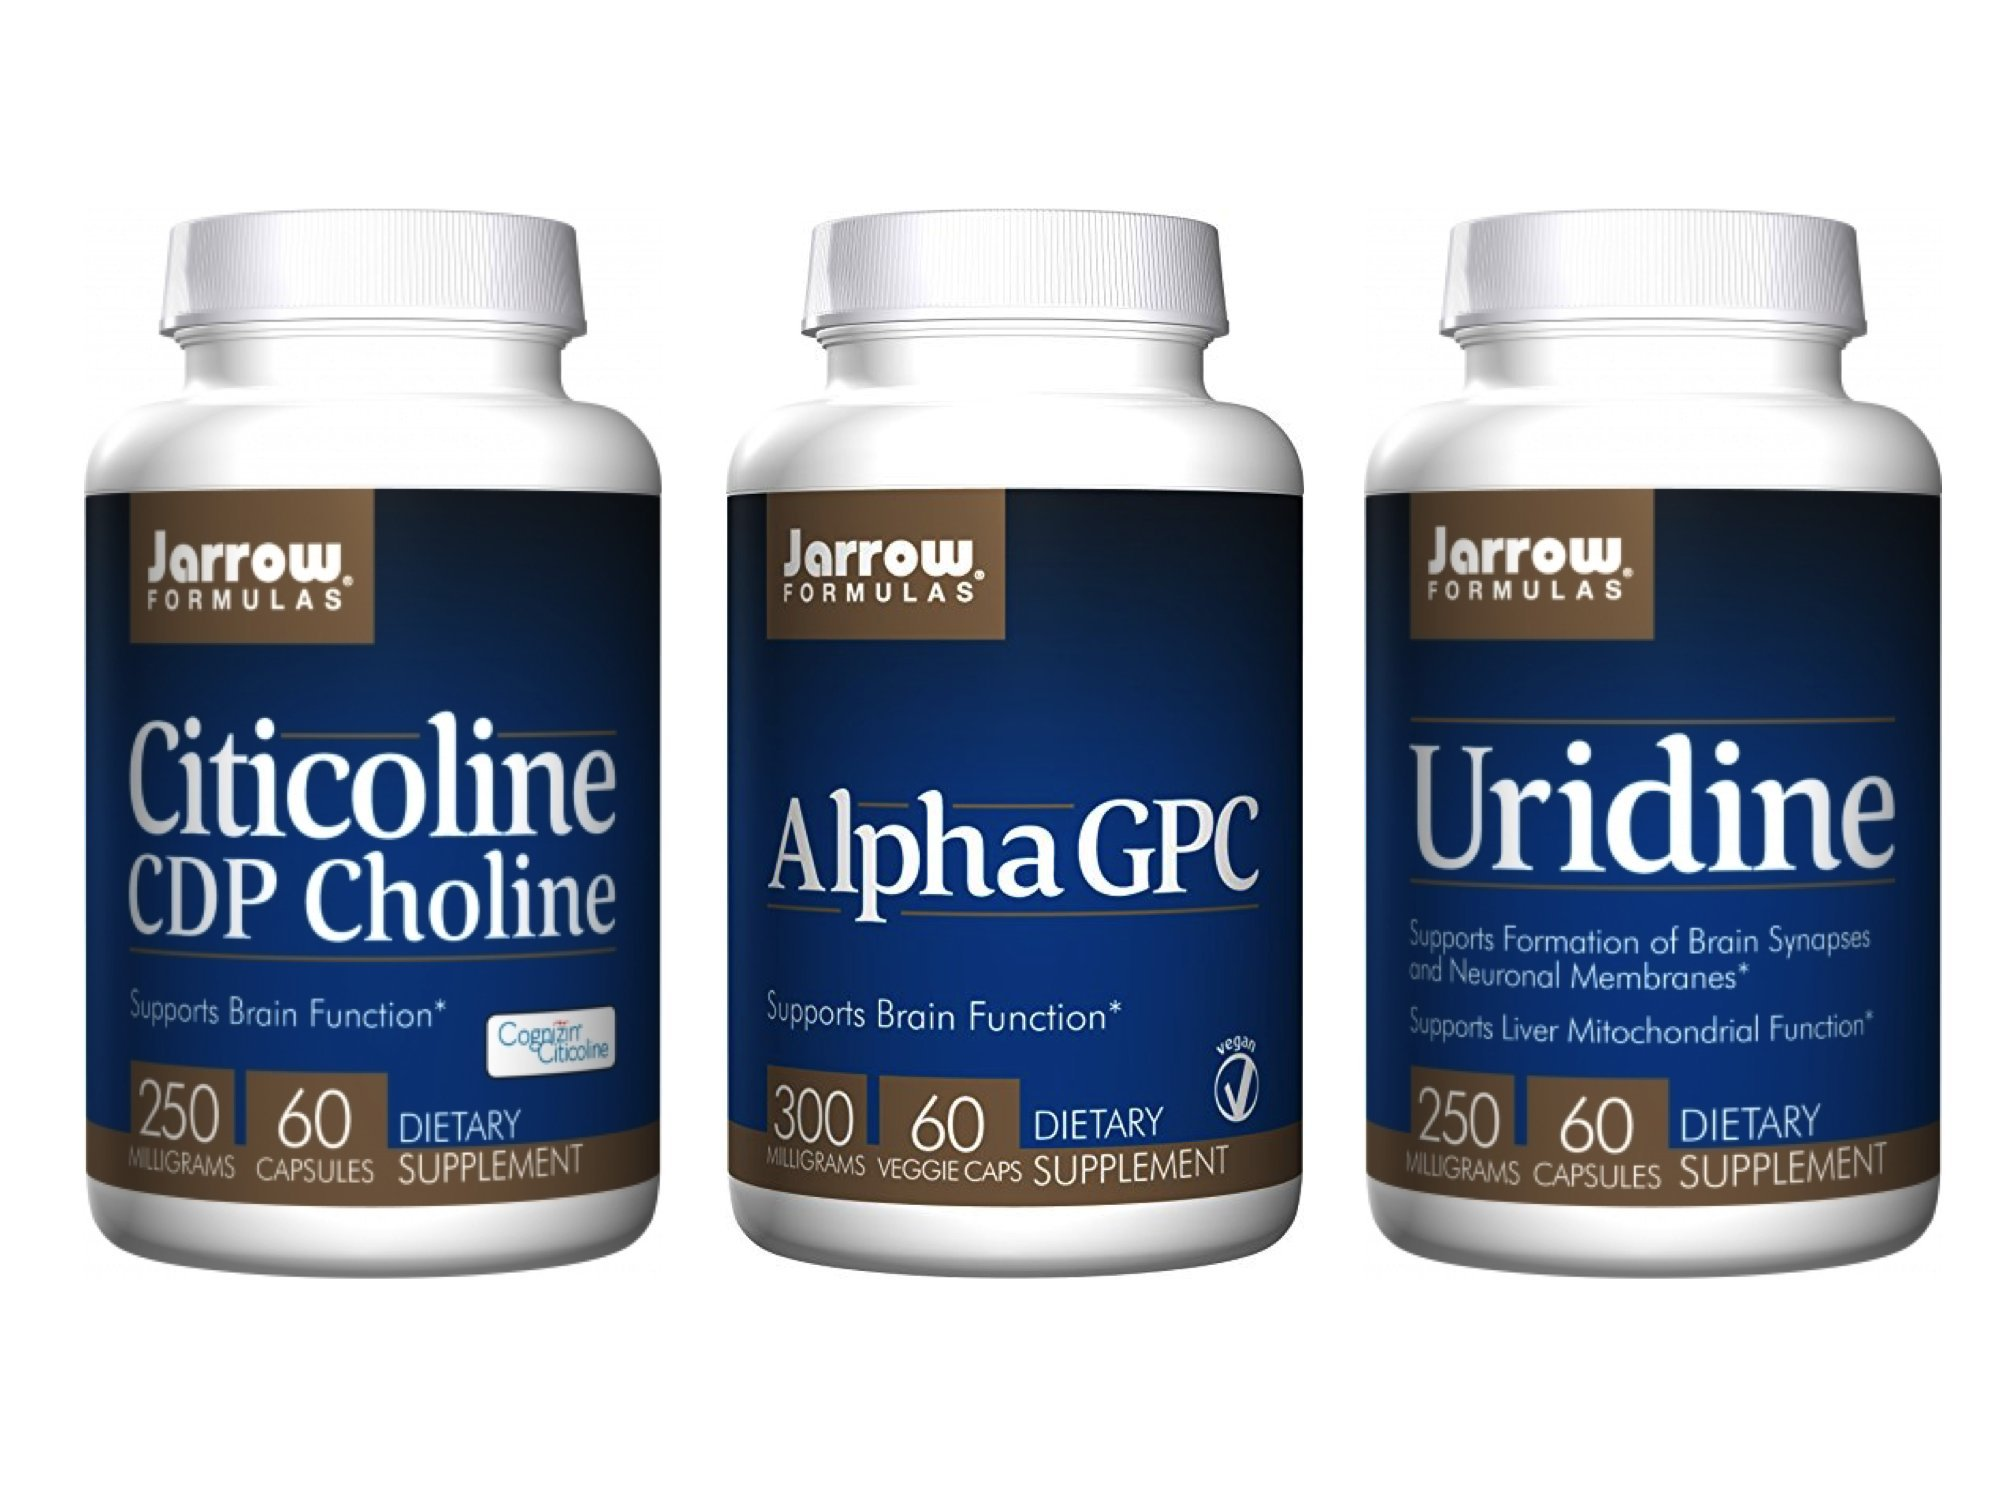 Jarrow Formulas Supplement Bundle (3 Items) – CDP Choline + Alpha GPC + Uridine